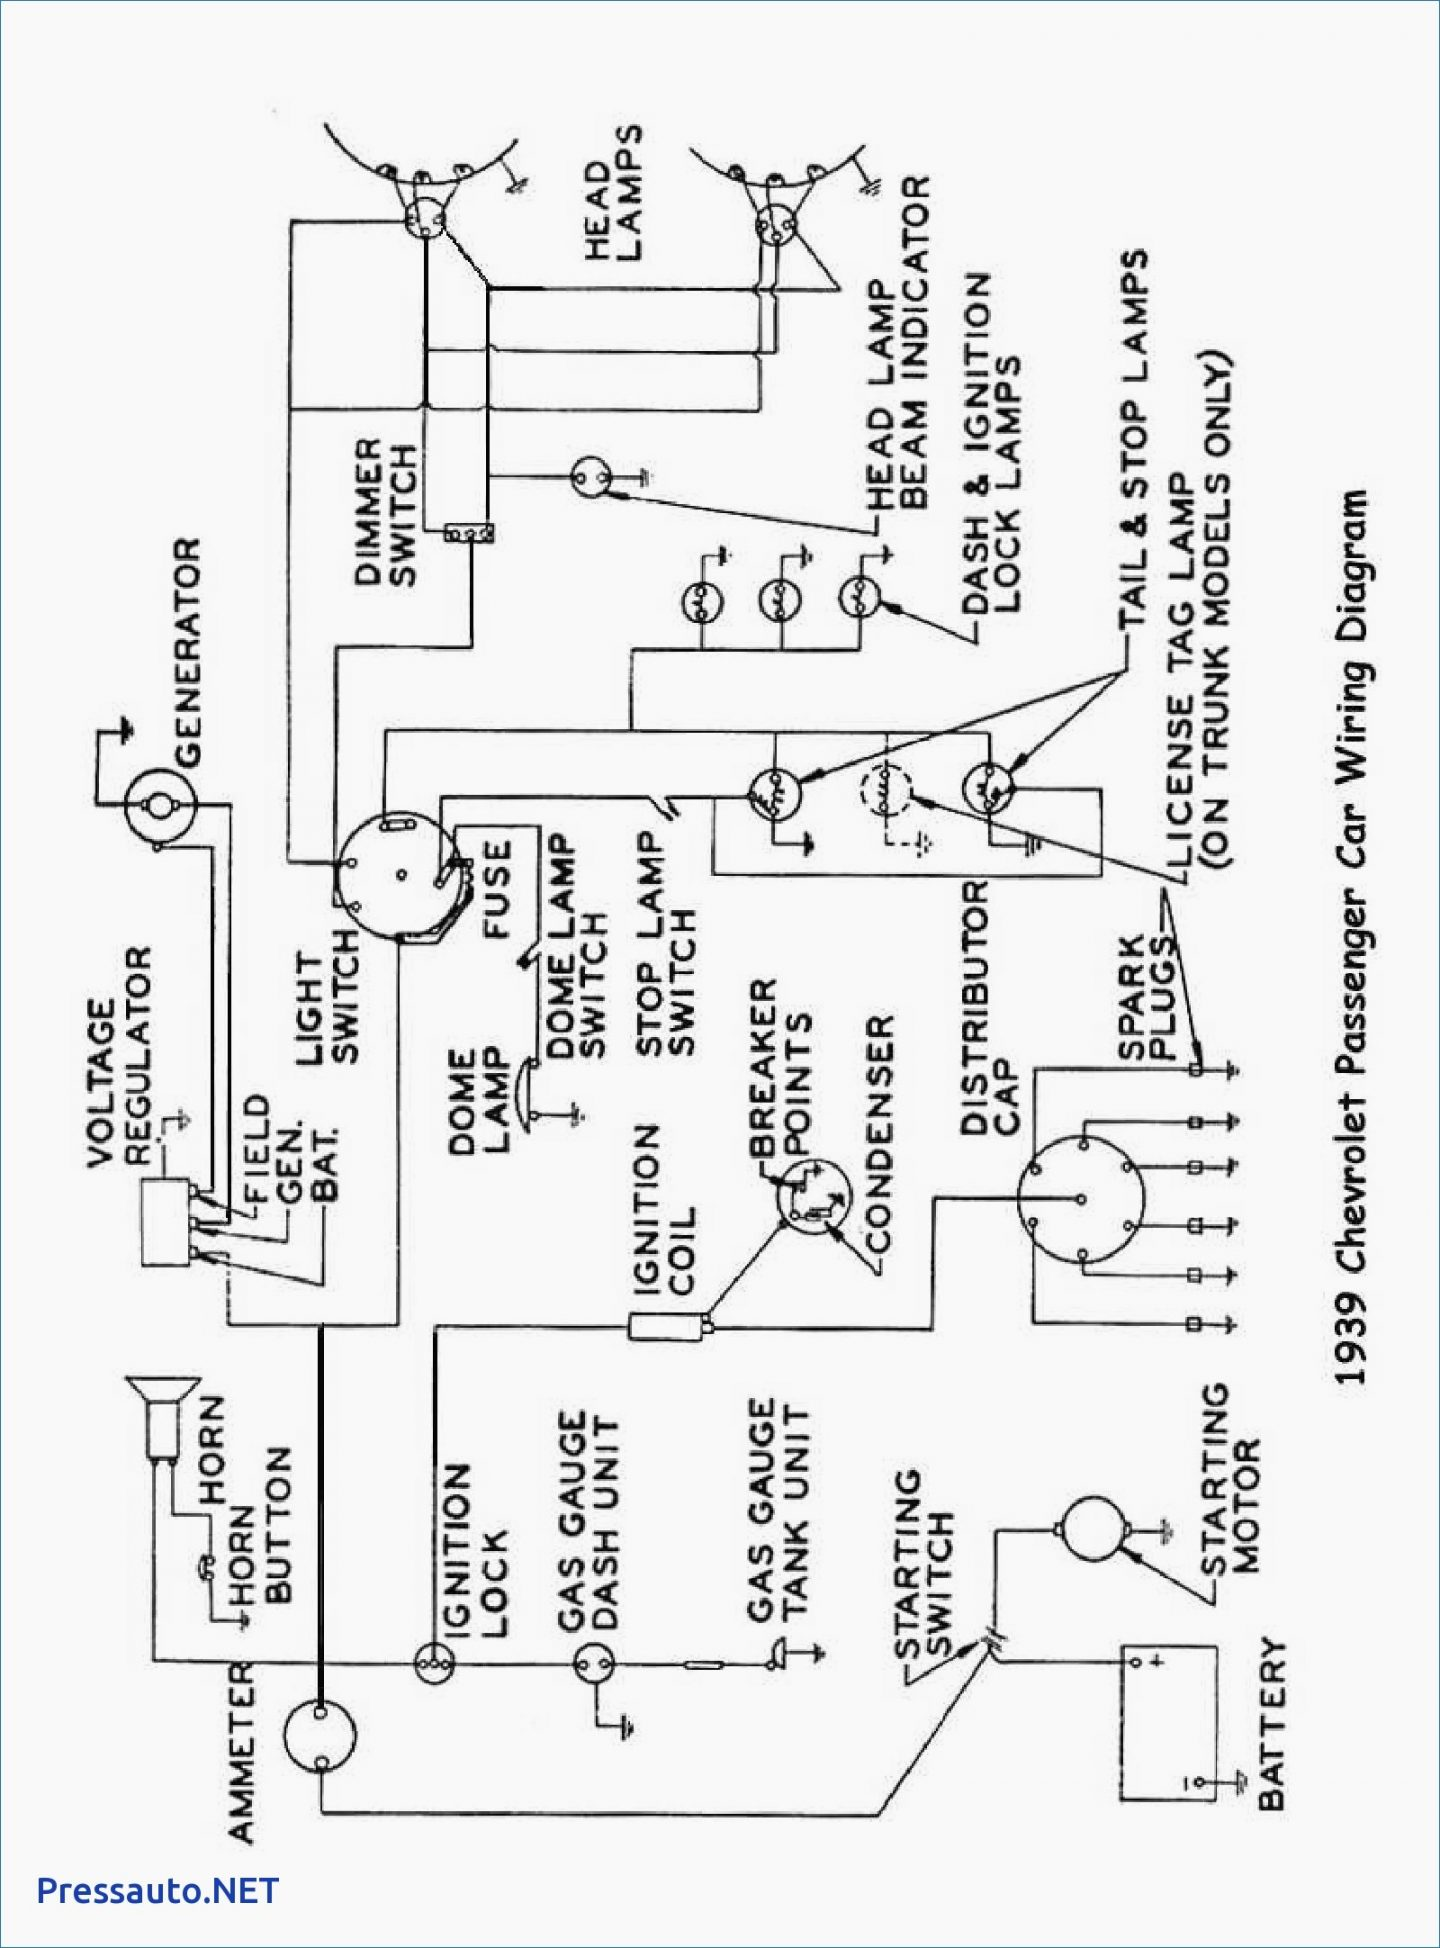 Free Electrical Drawing At Getdrawings